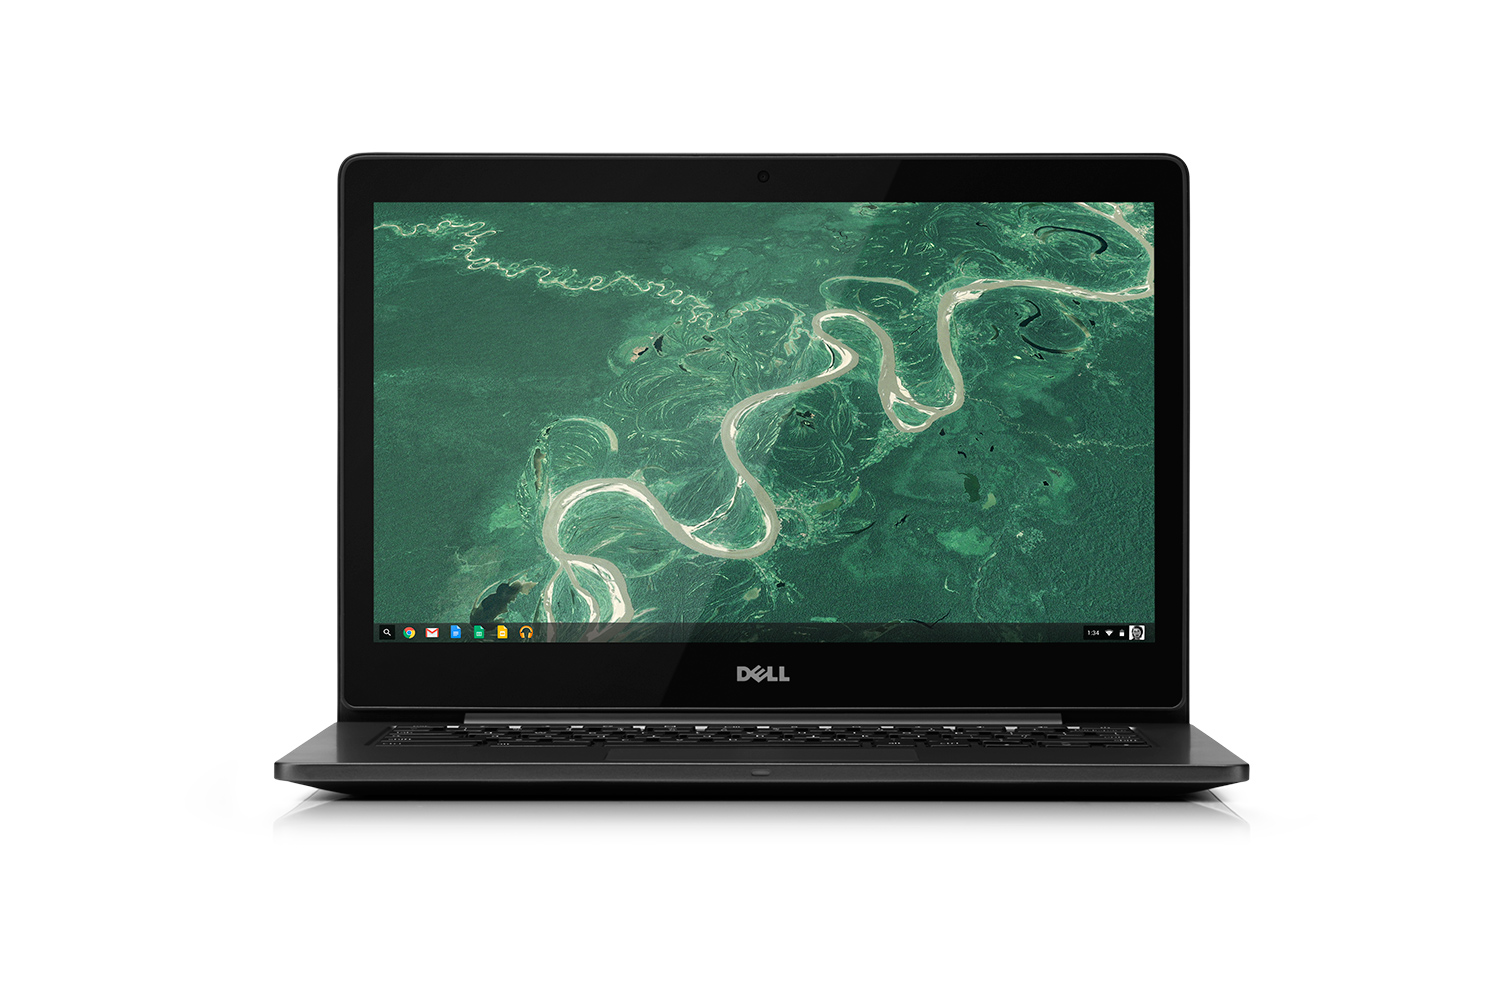 Google And Dell Announce A Chromebook Built For Business